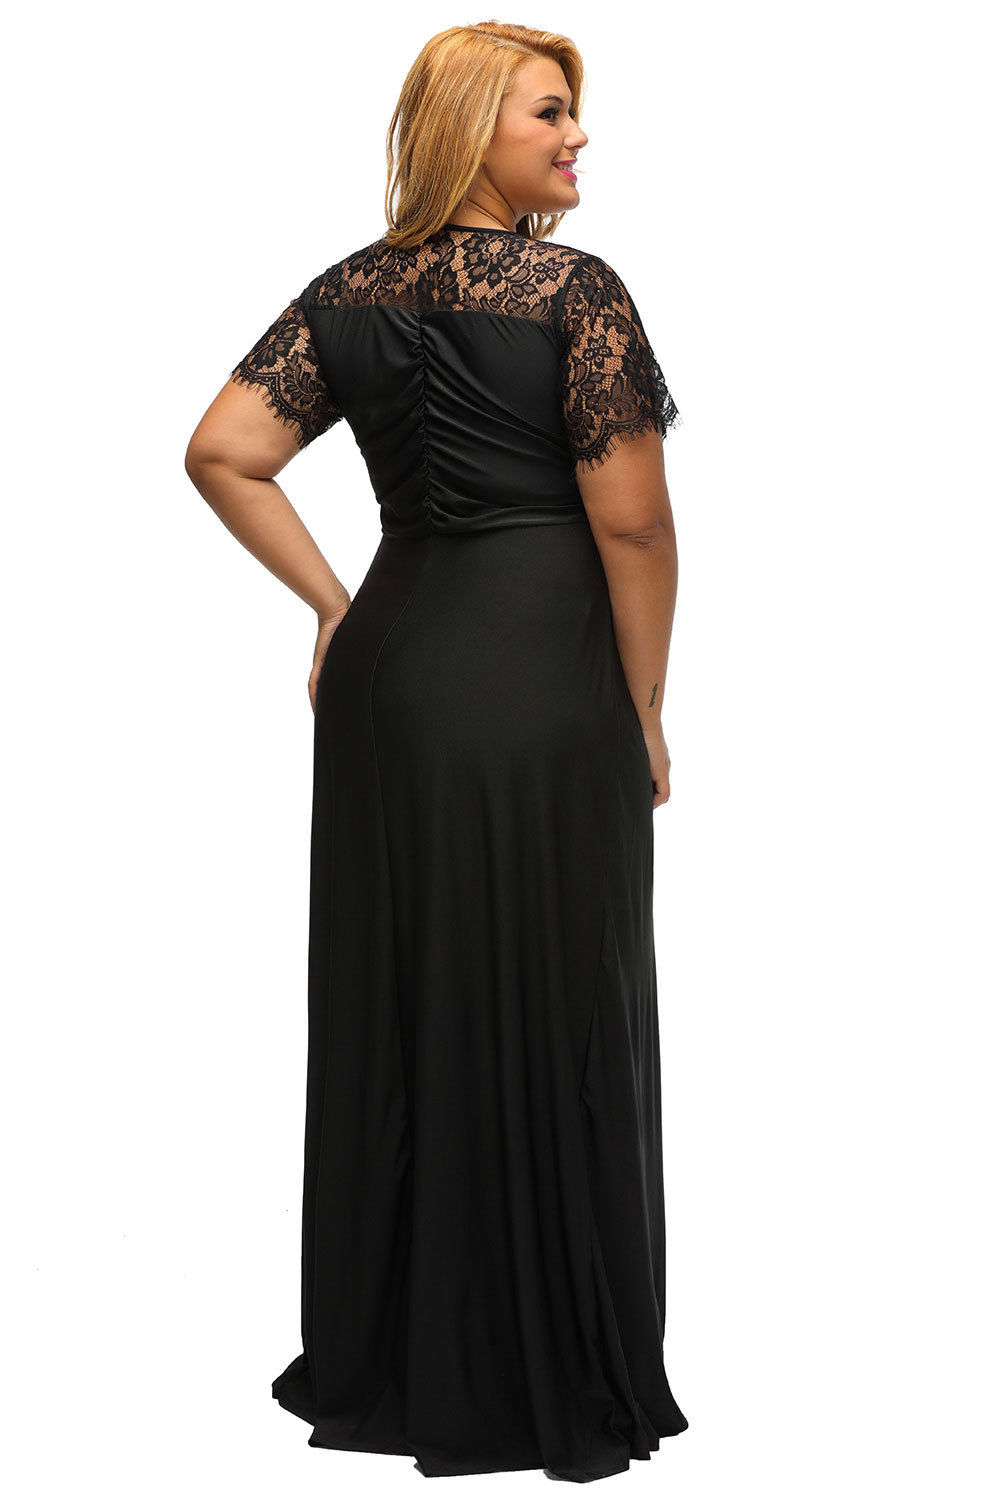 Cool USA Plus Size Womens Formal Gown Wedding Bridesmaid ...